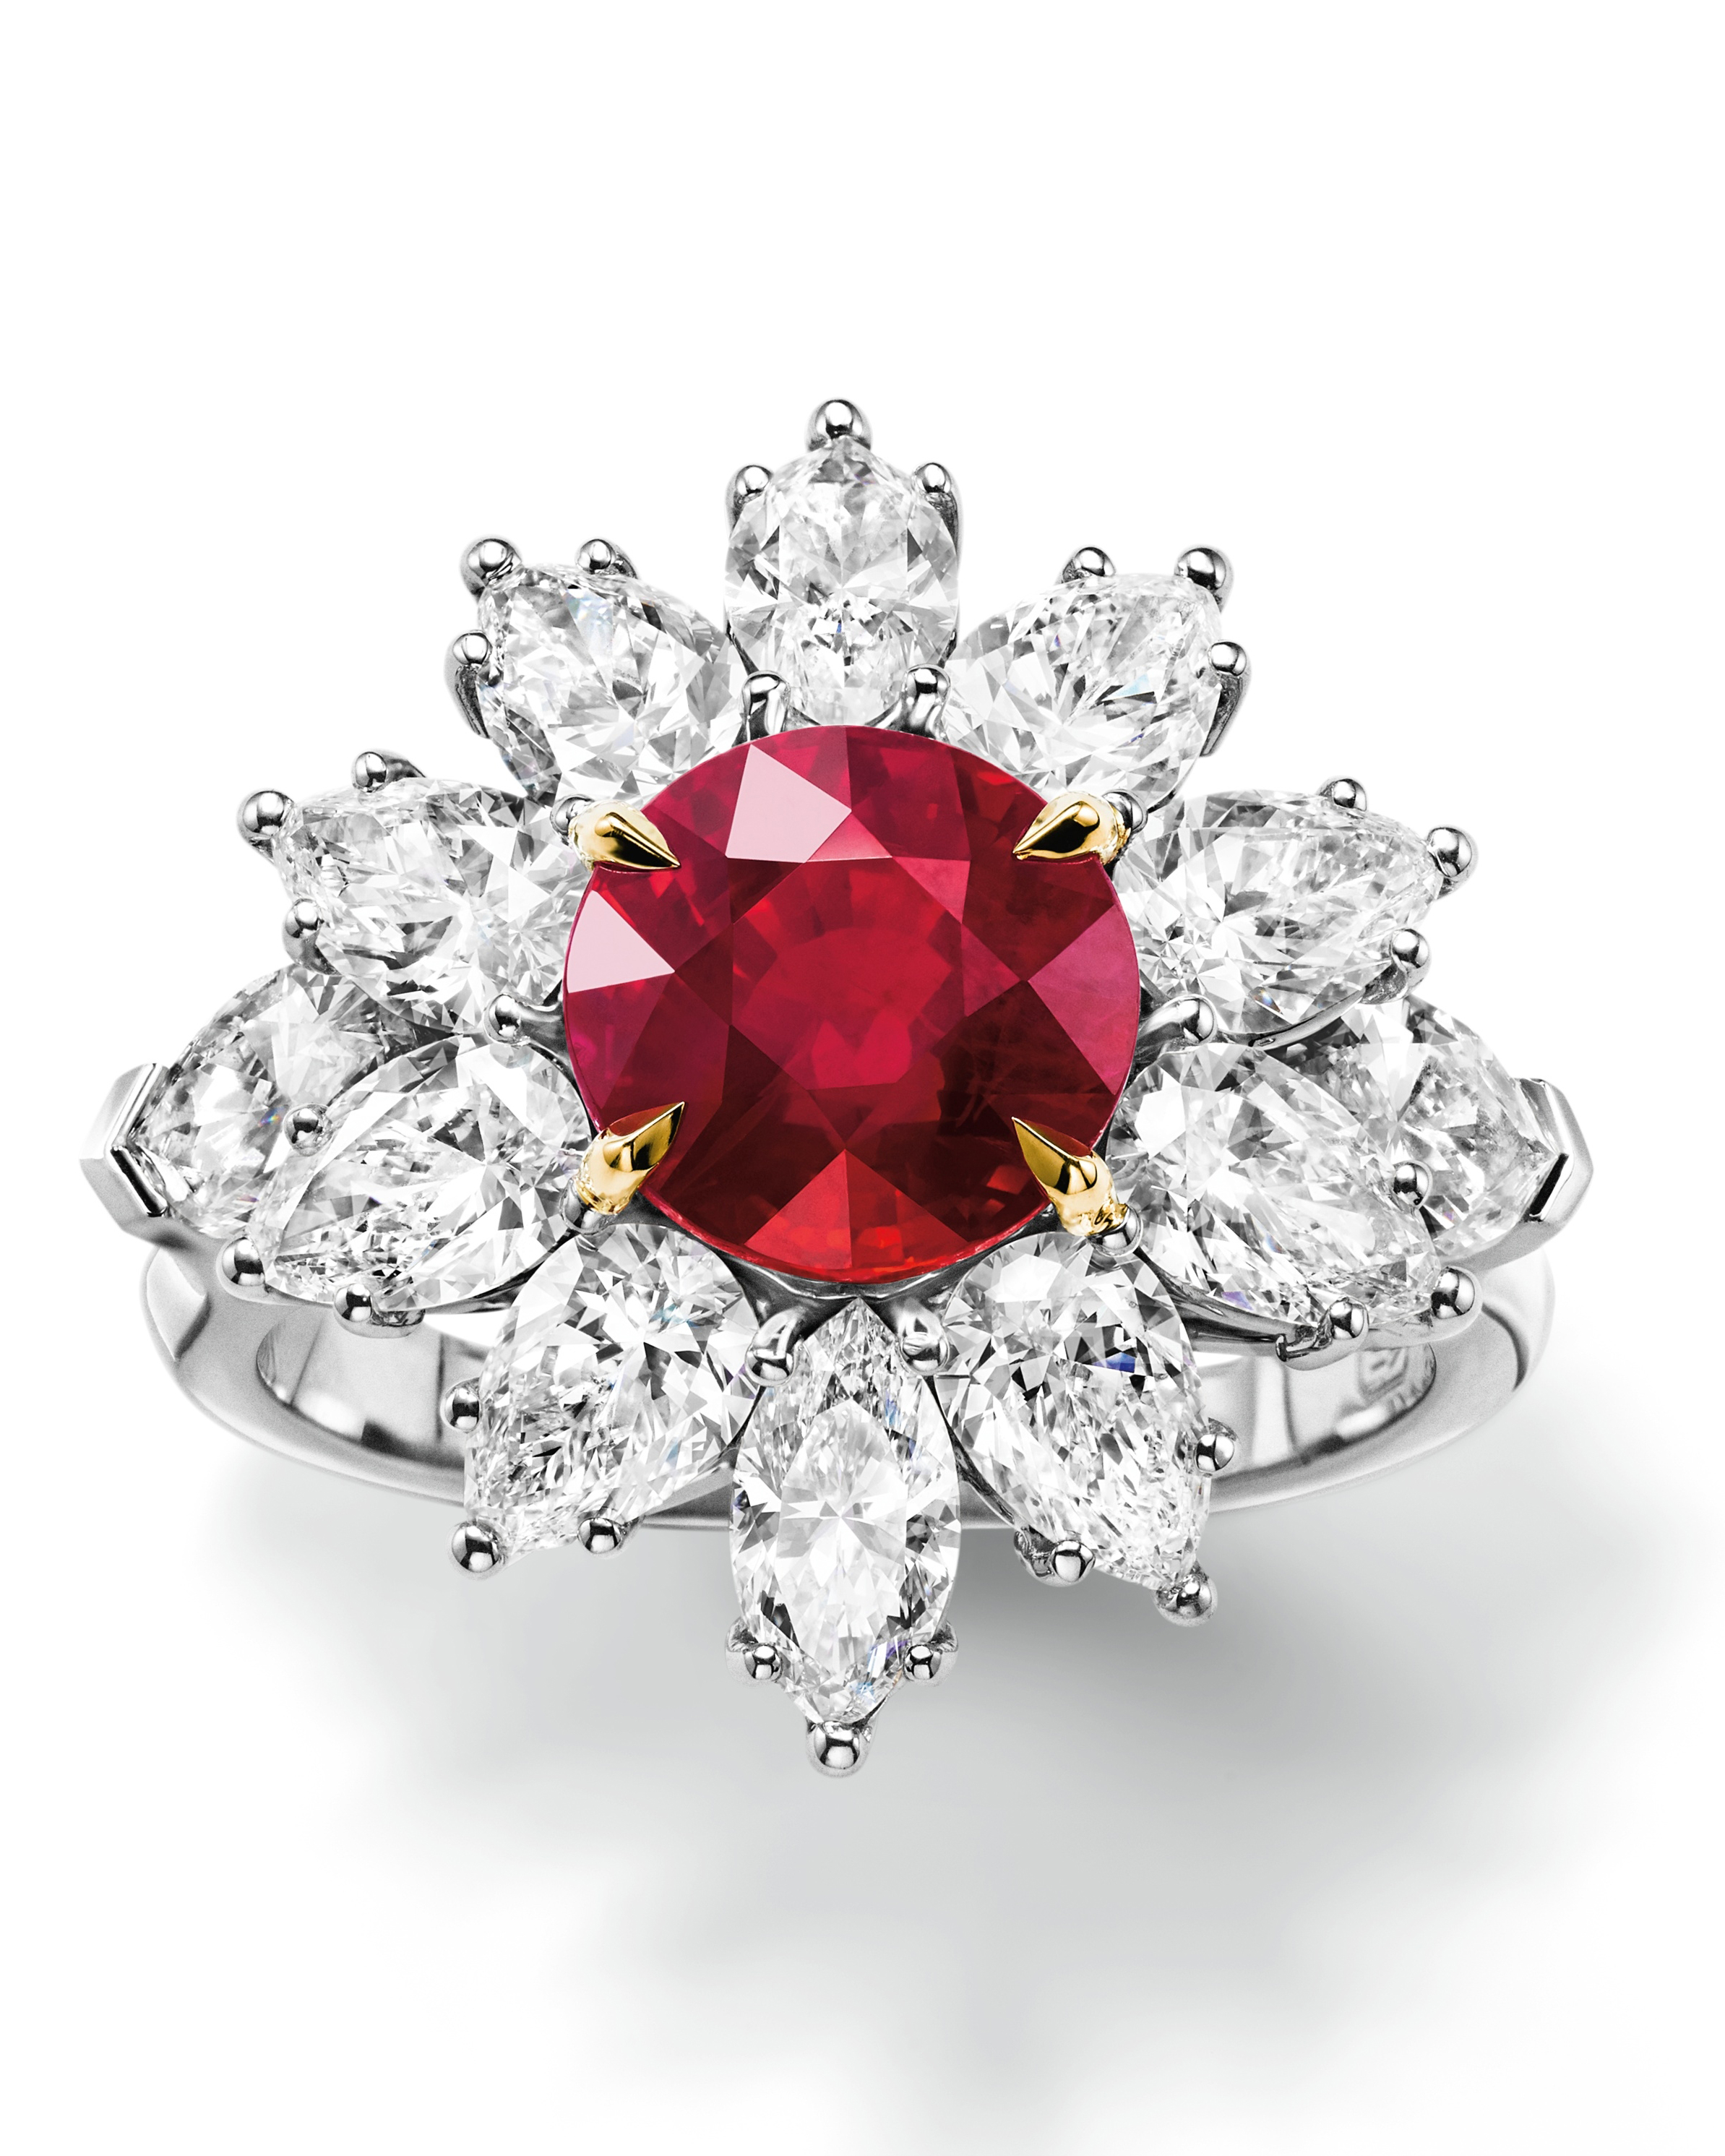 harry-winston-oval-ruby-engagement-ring-marquise-cut-flower-halo-0816.jpg